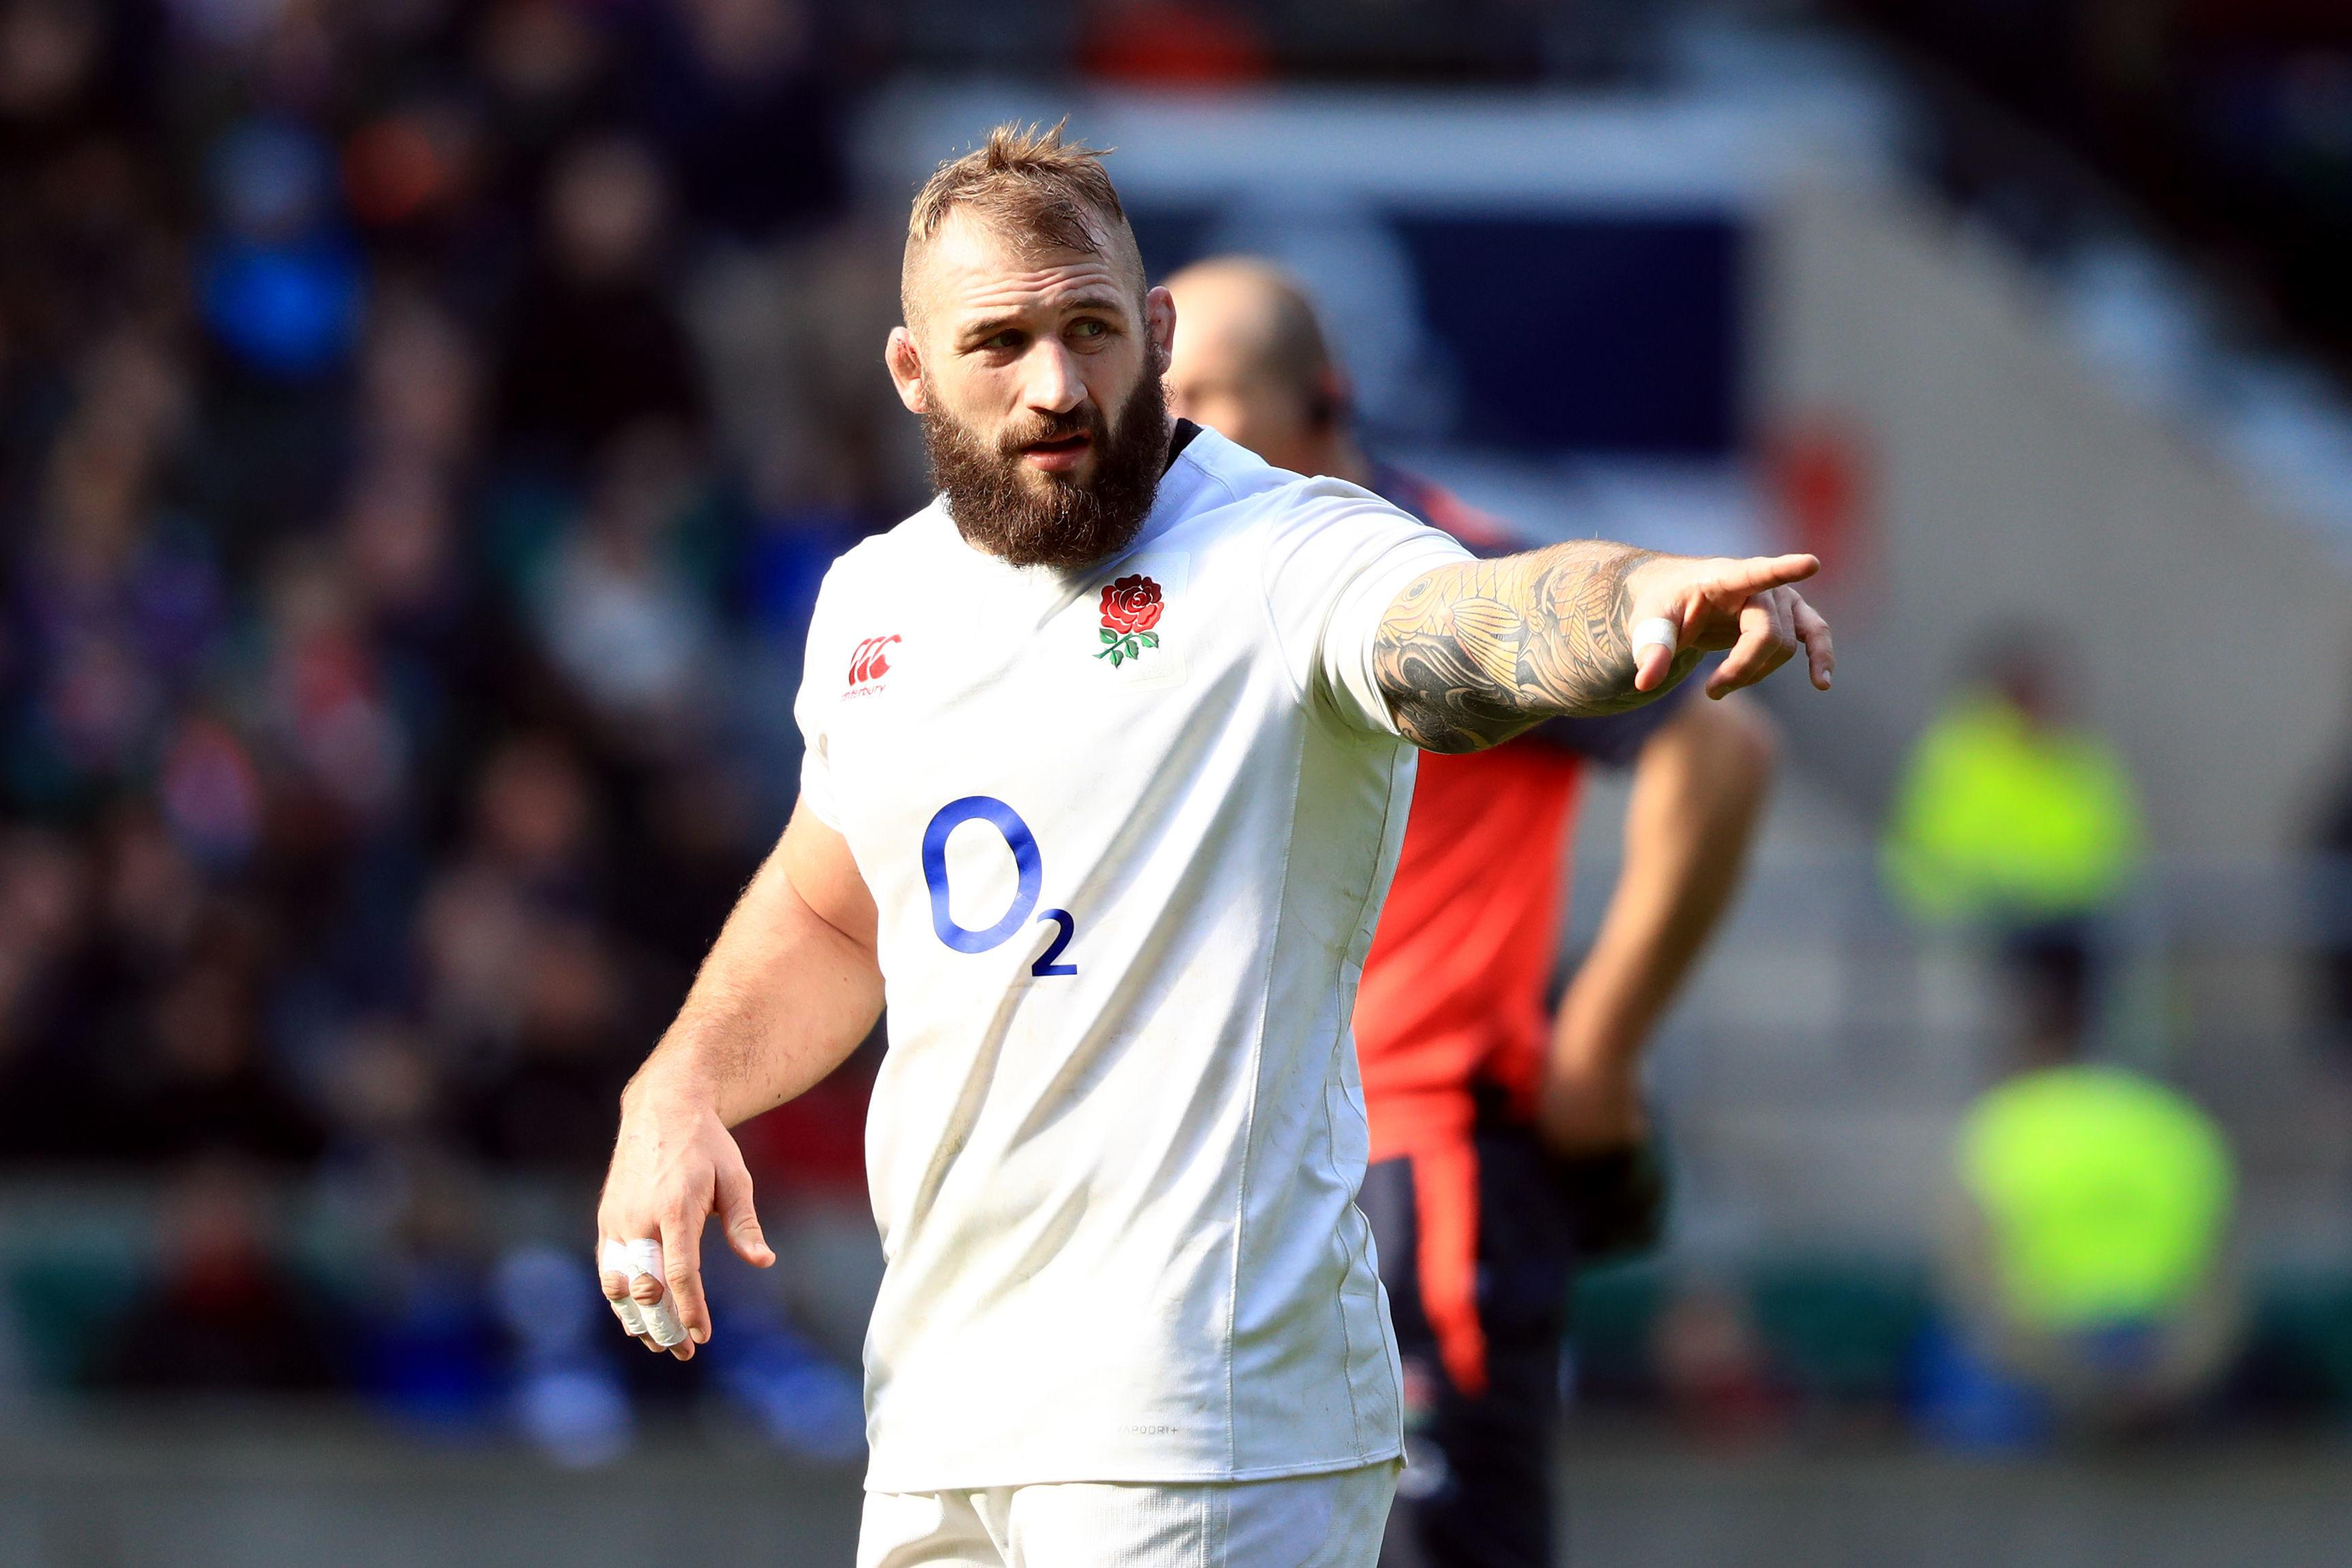 Joe Marler won 59 caps for England but has decided to call it quits